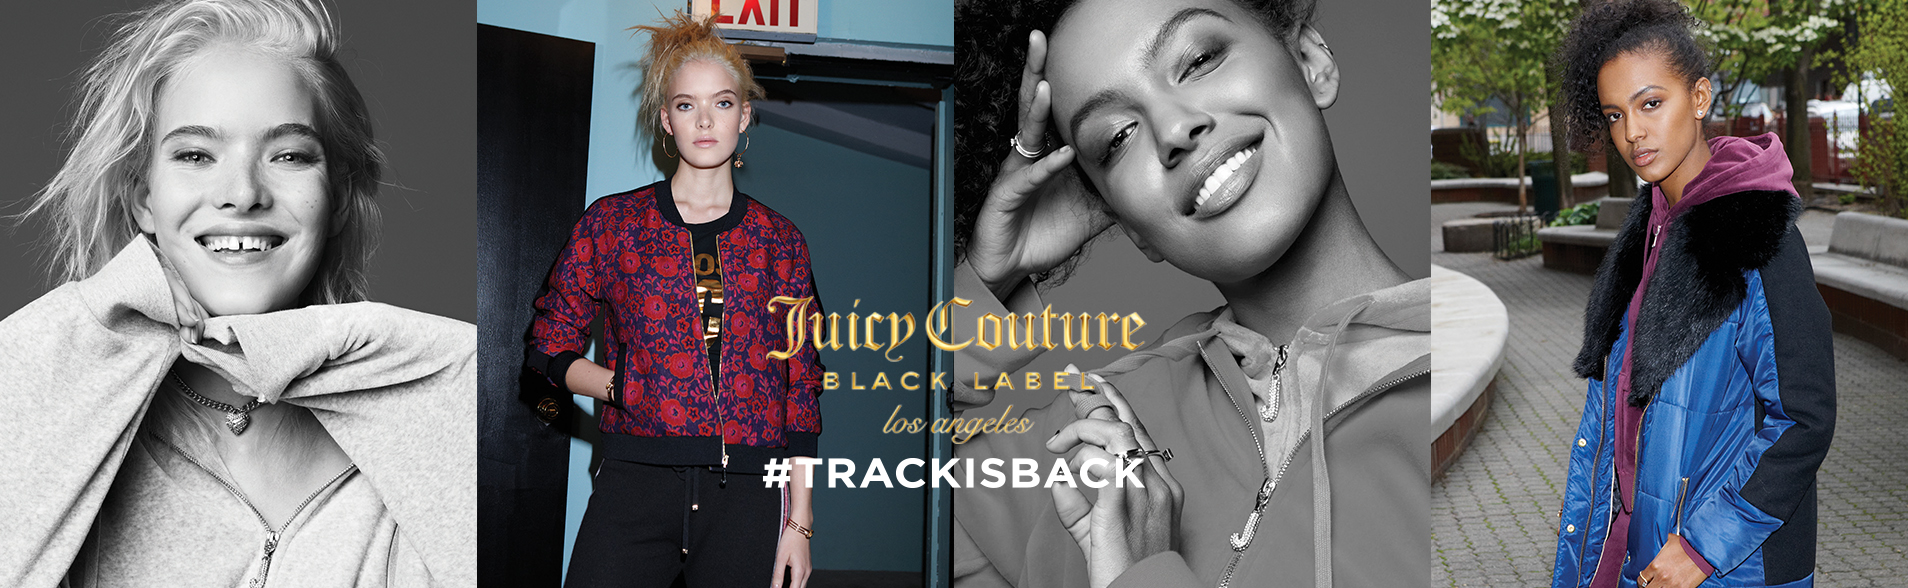 Juicy Couture Track is back